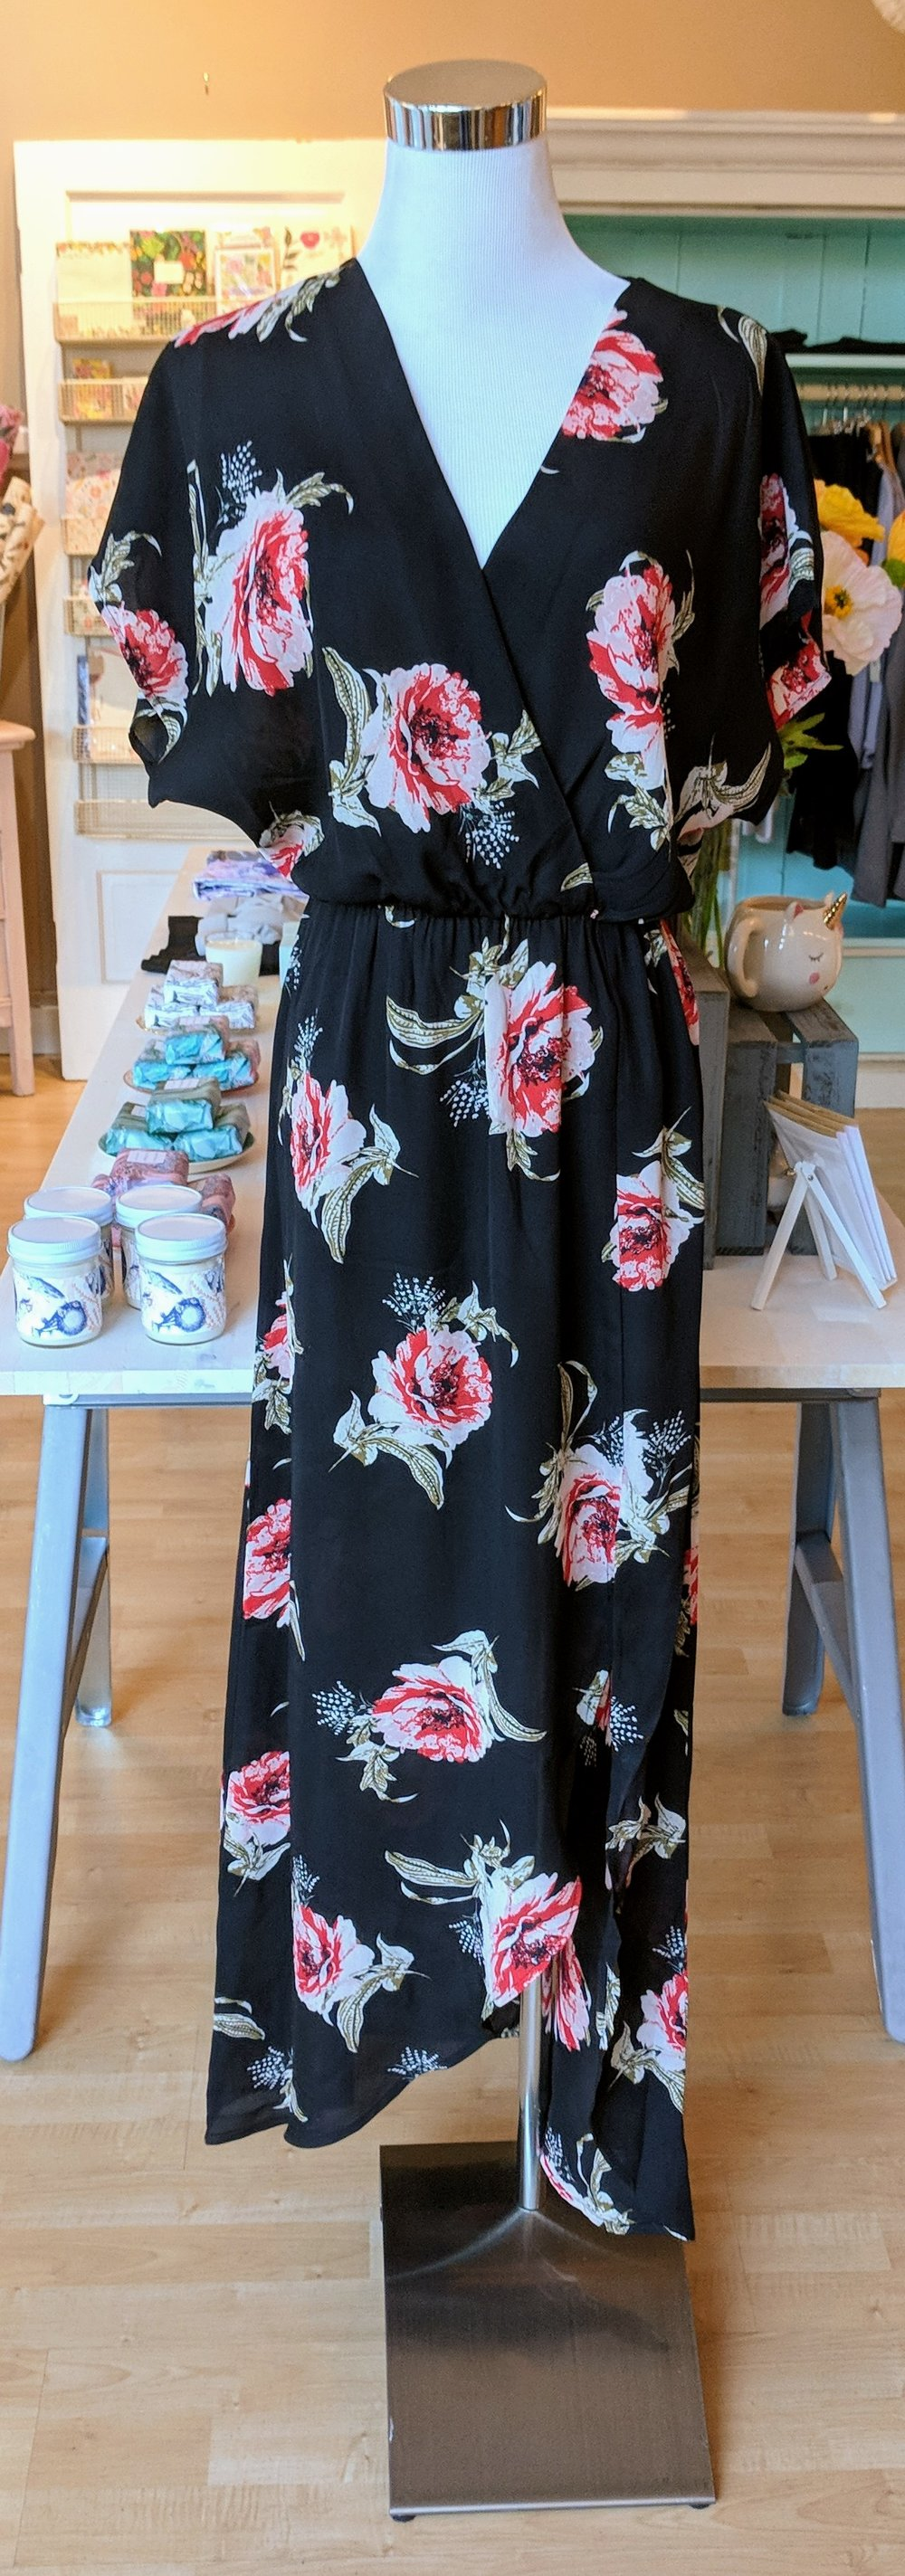 Black floral wrap dress with dolman sleeve.